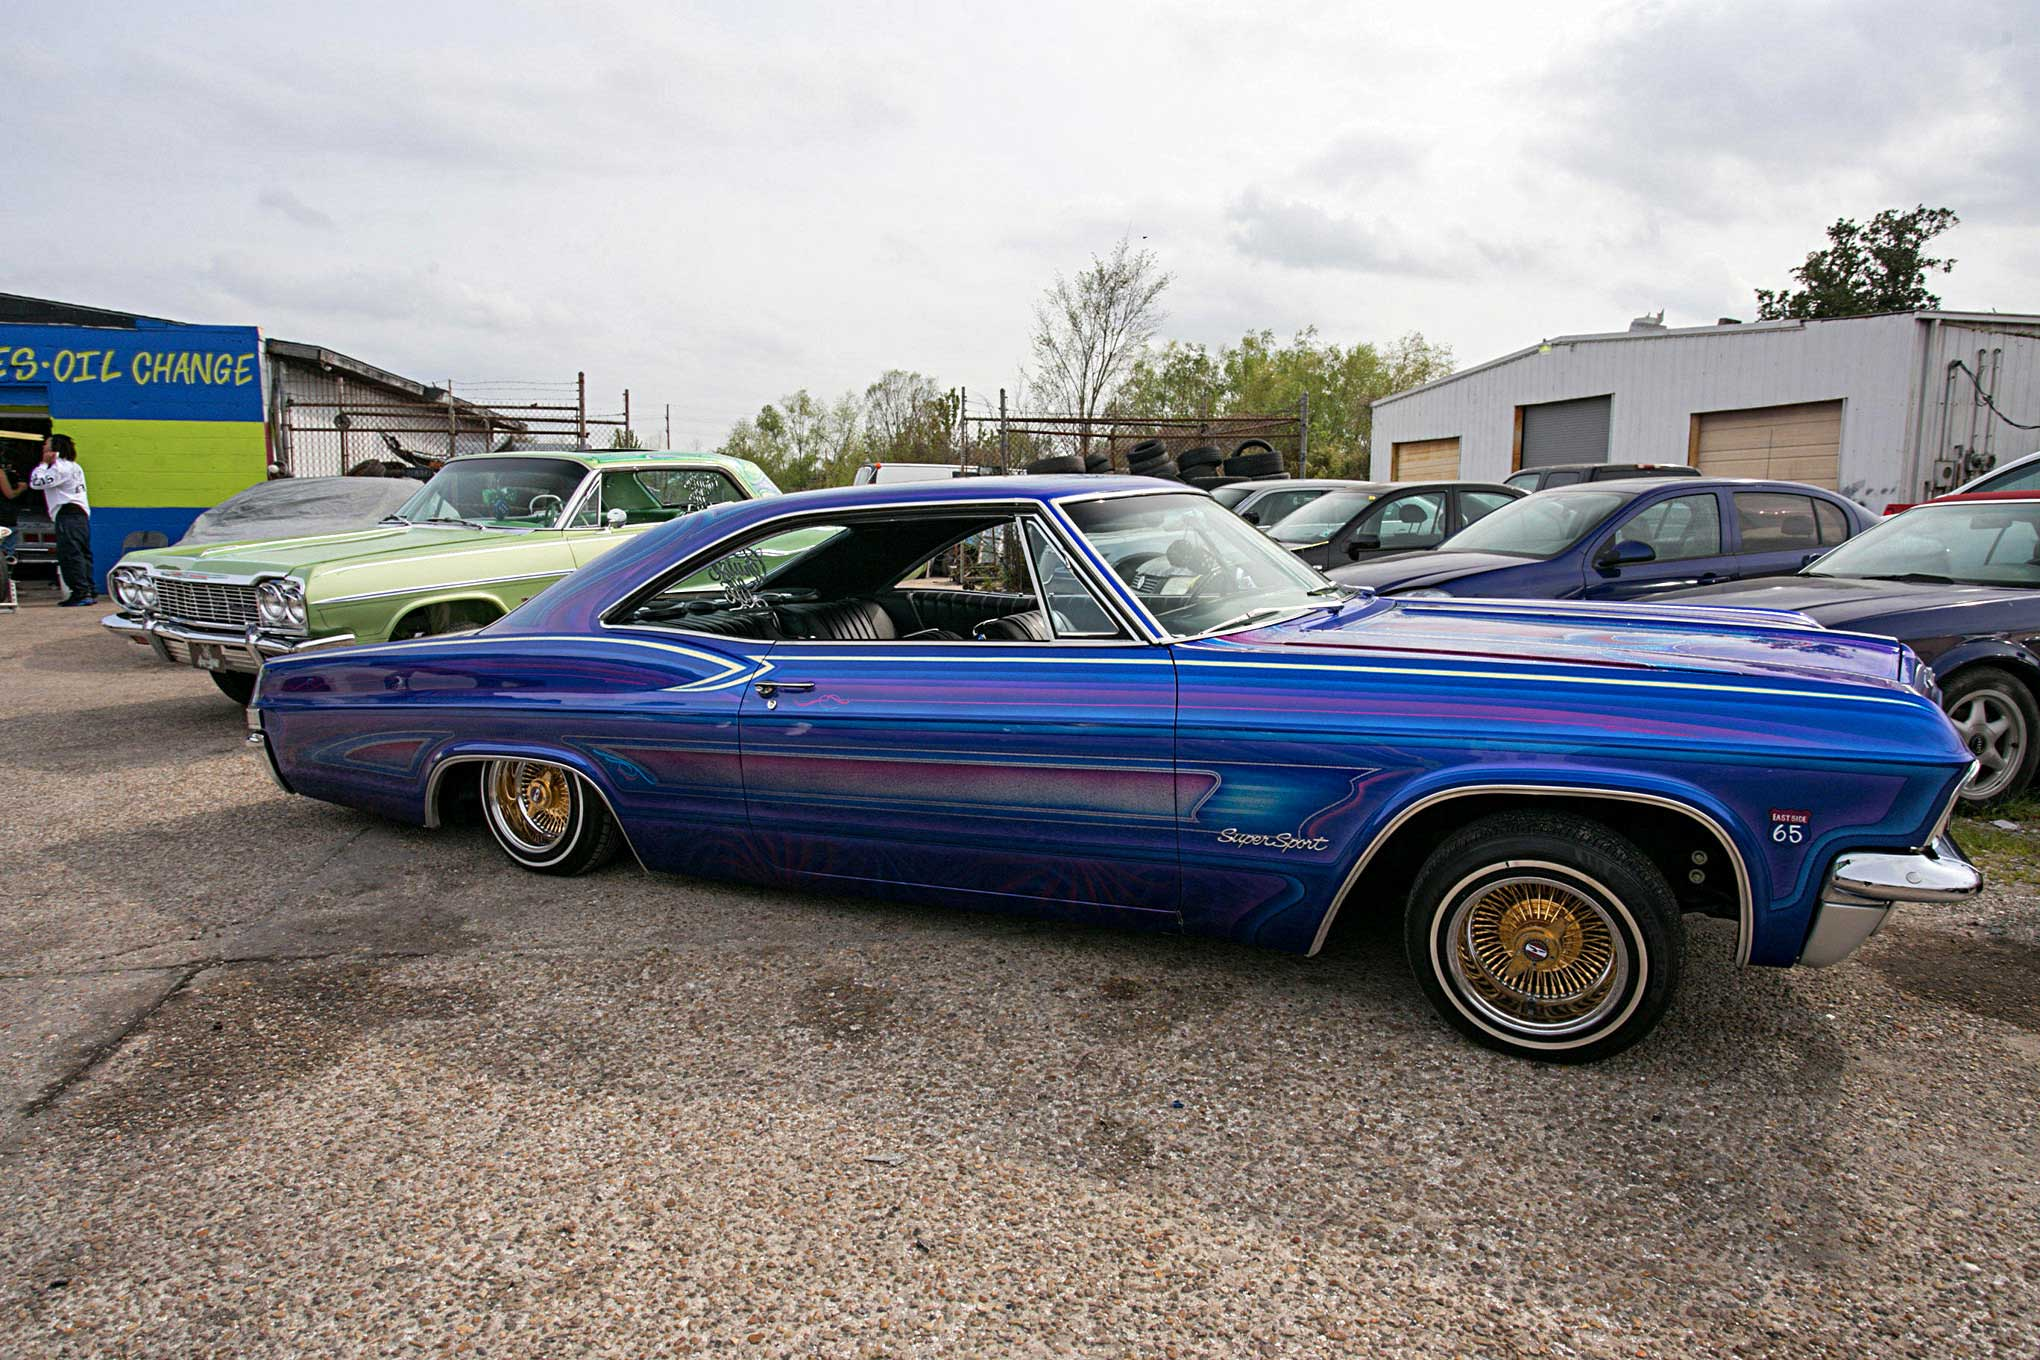 Cadillac Of New Orleans >> Cruise Life Car Club - Lowrider Revival in New Orleans